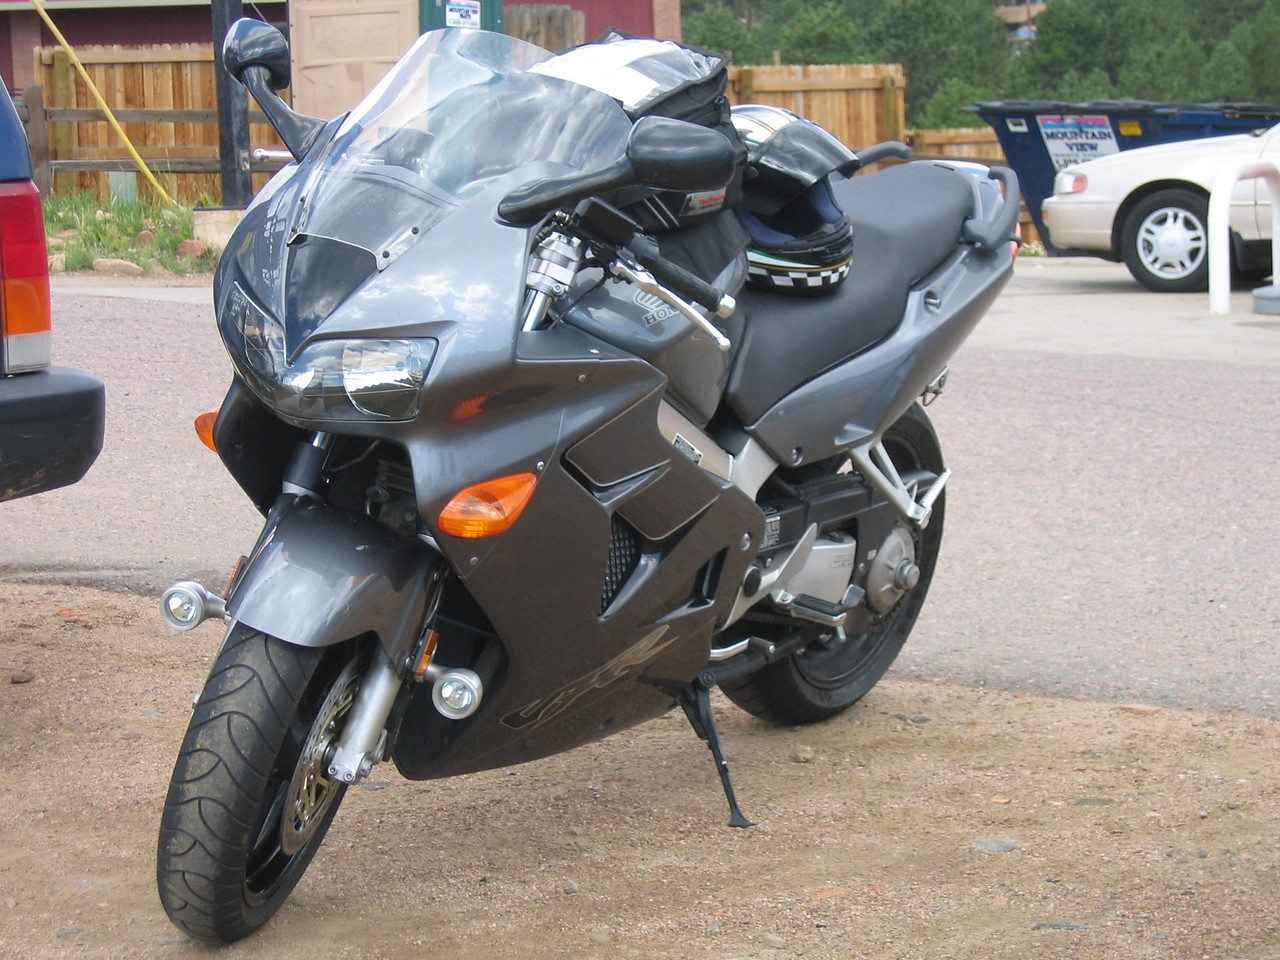 We are quickly joined by Steve (forgot his last name, sorry), on his new-to-him VFR.